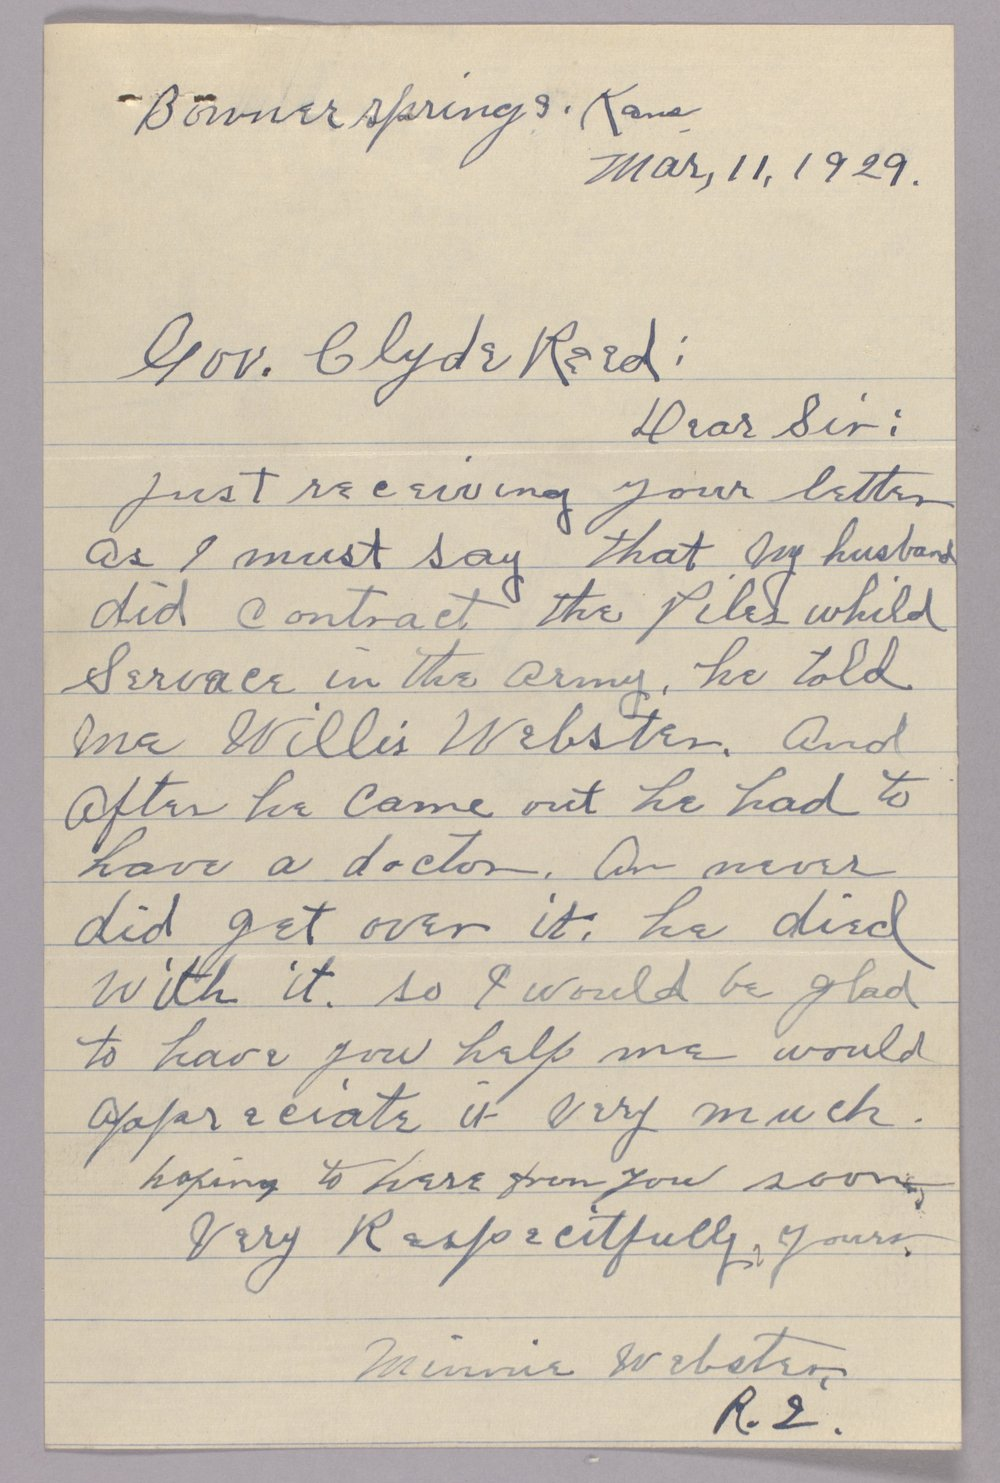 Governor Clyde M. Reed correspondence, Adjutant General - 7